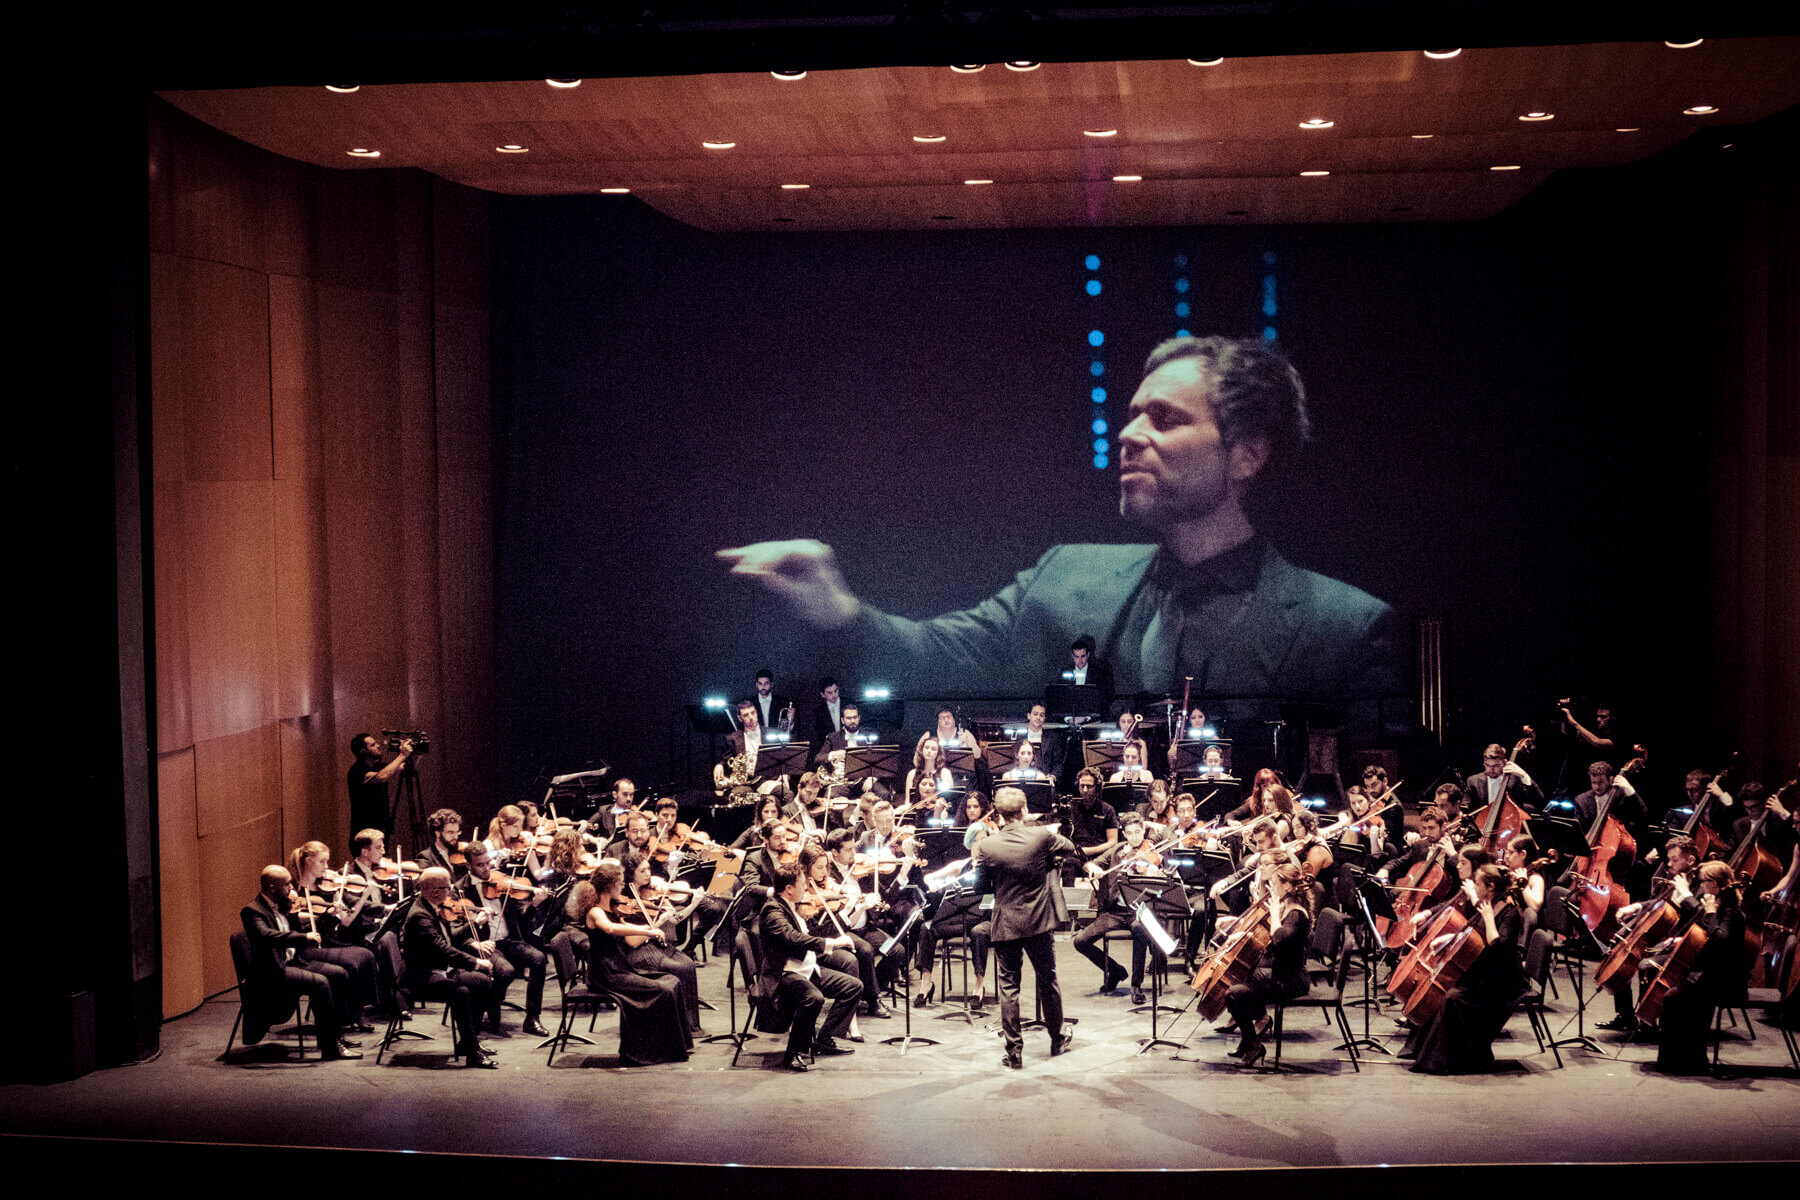 conductor_josep_vicent